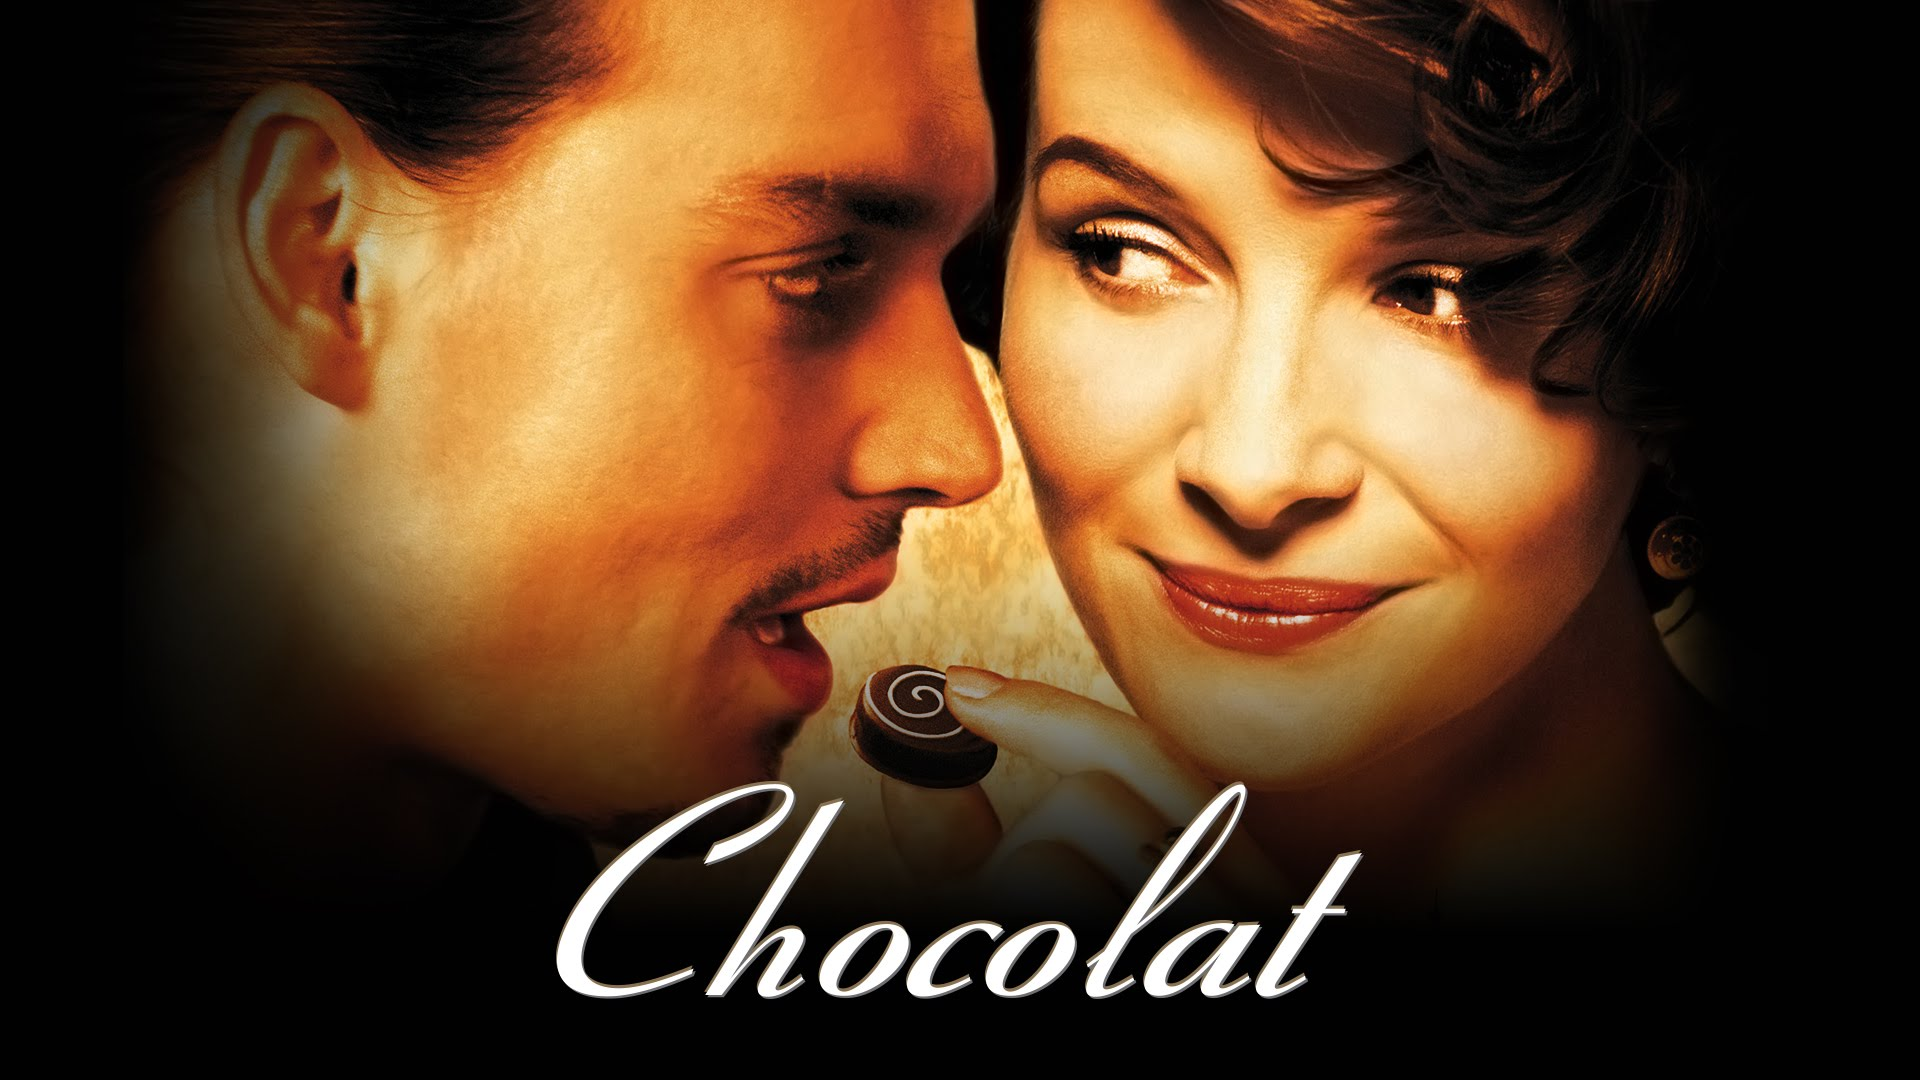 an analysis of seduction in the movie chocolat Chocolat is a 1988 film directed by claire denis, about a french family that lives  in colonial  she attempts to seduce protée after luc has left but he rejects her  advance  the title chocolat comes from the 1950s slang meaning to be  cheated, and thus refers to the status in french cameroon of being black and  being.